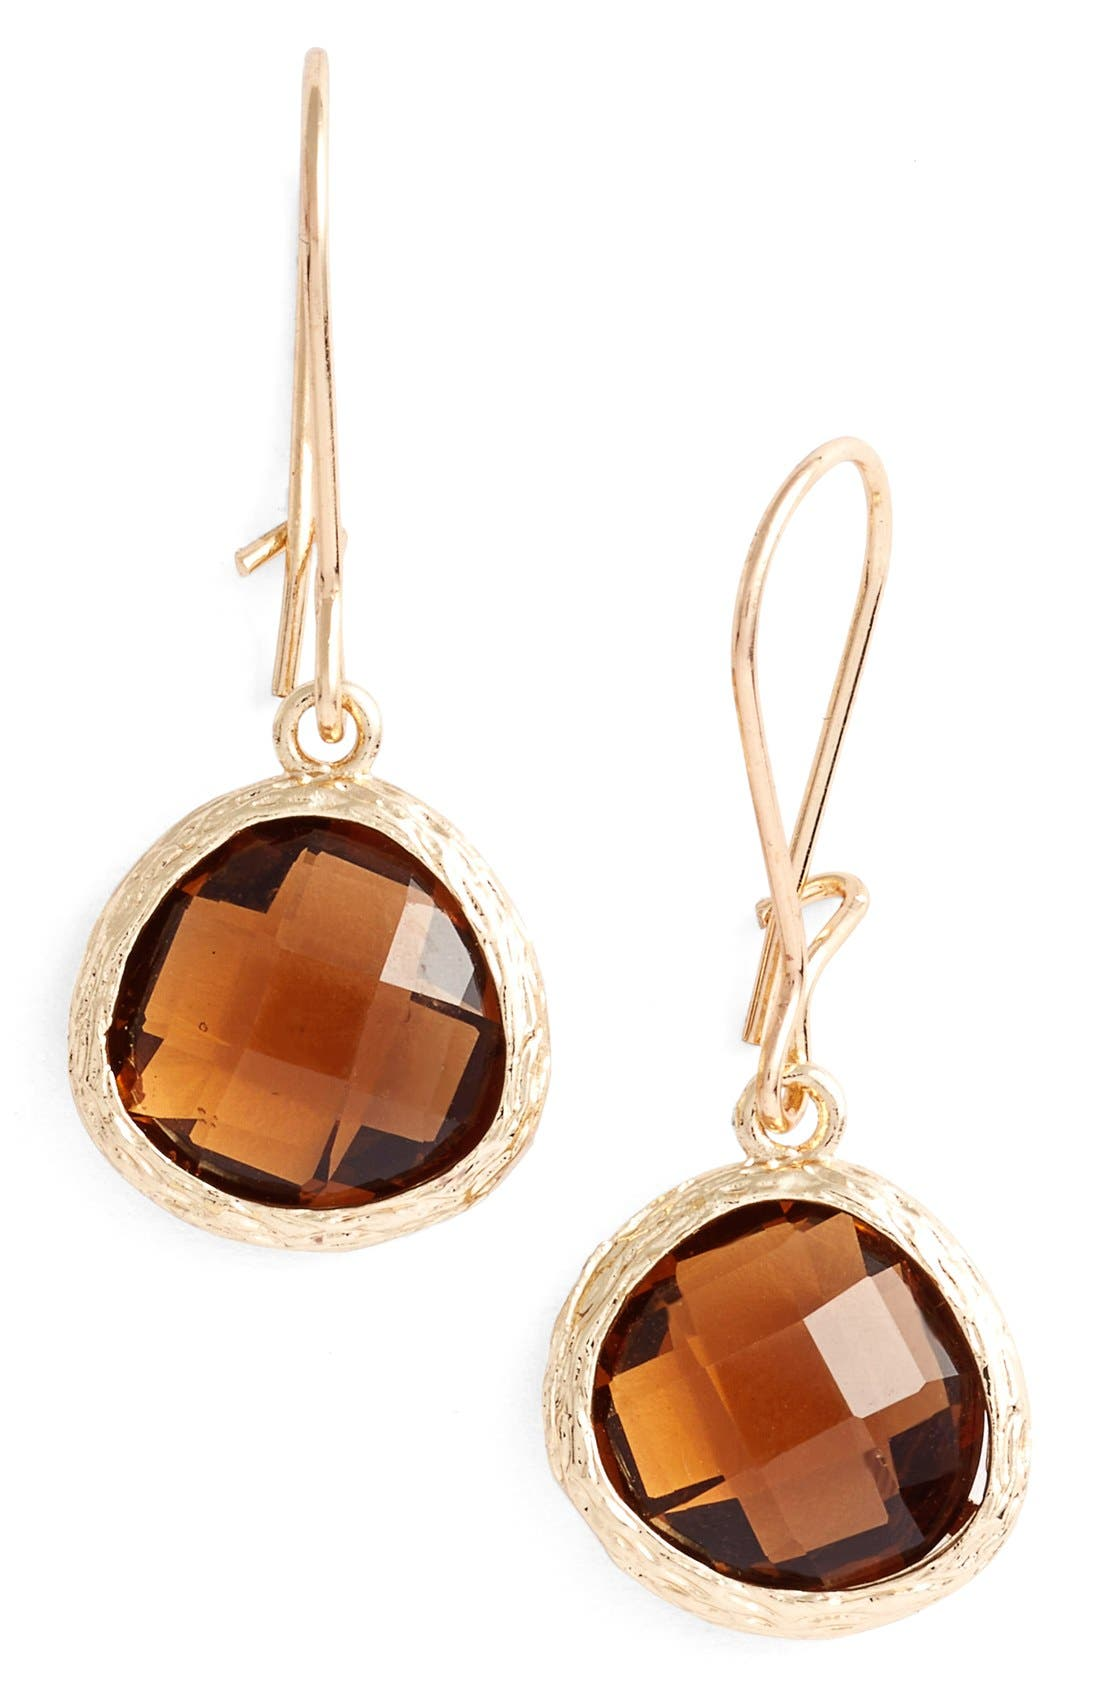 Main Image - Nordstrom Round Drop Earrings